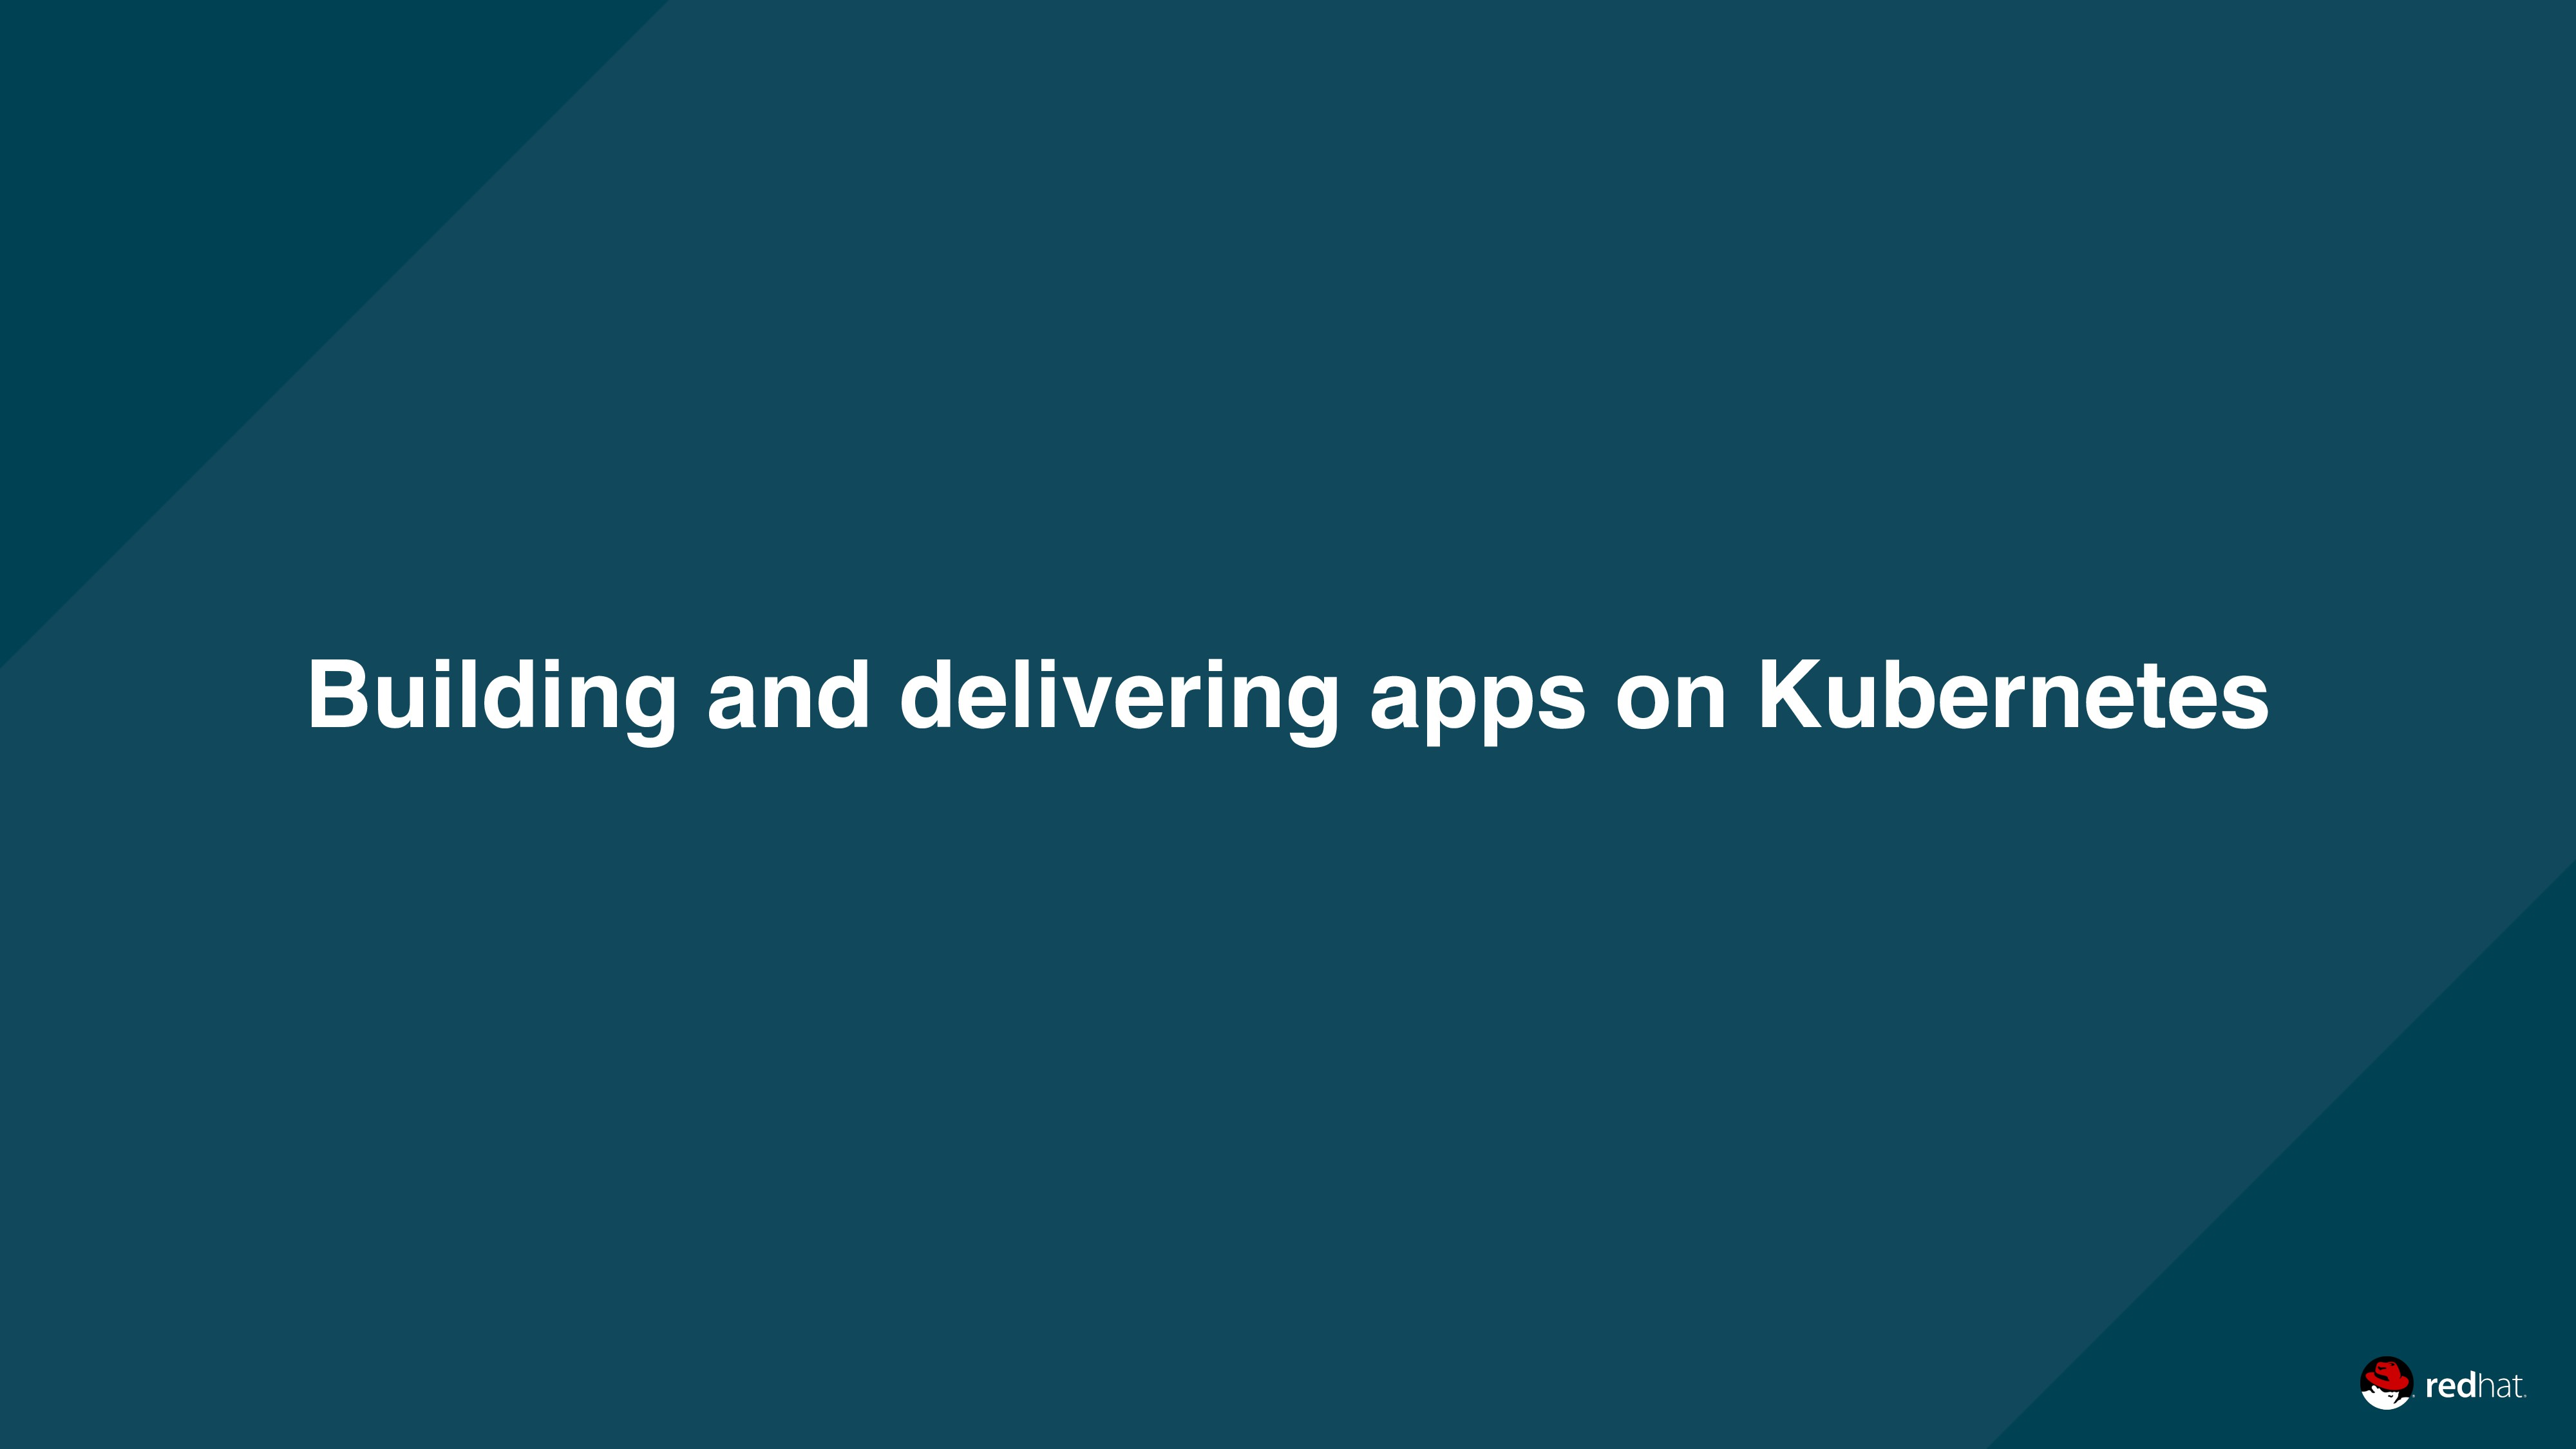 Building and delivering apps on Kubernetes